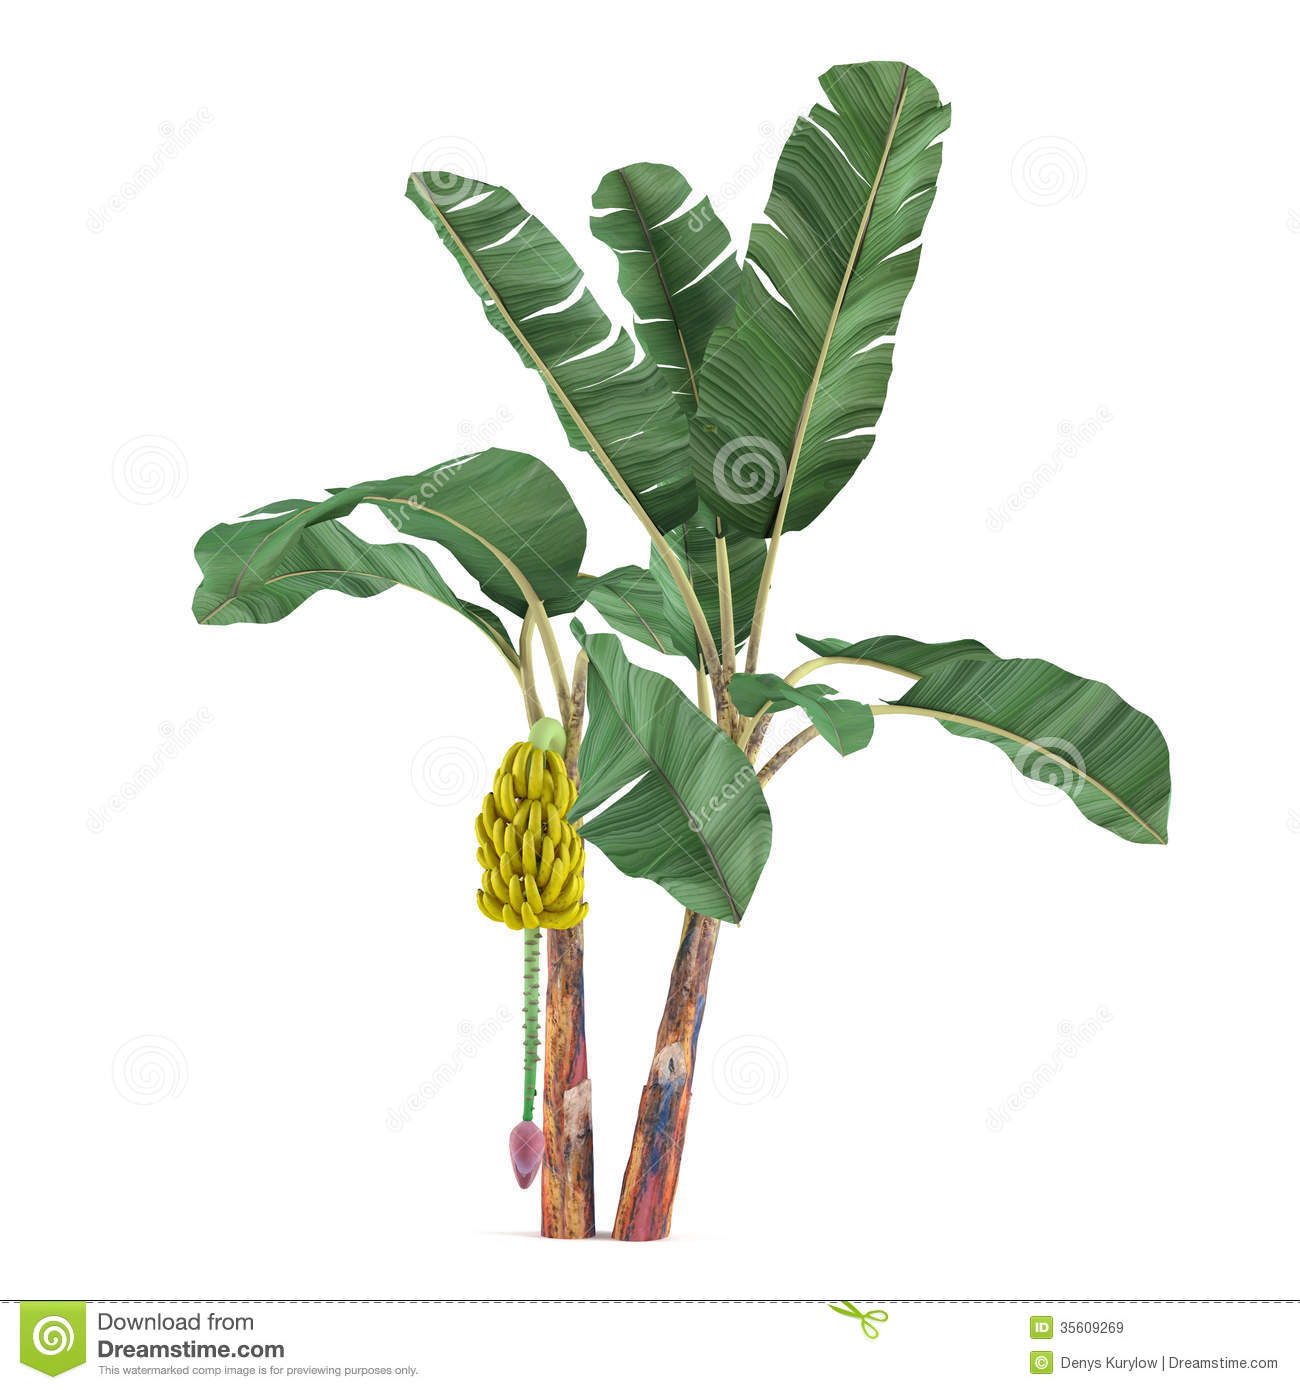 palm plant tree isolated musa acuminata banana stock illustration illustration of tropics free palm tree vector art free palm tree vector images